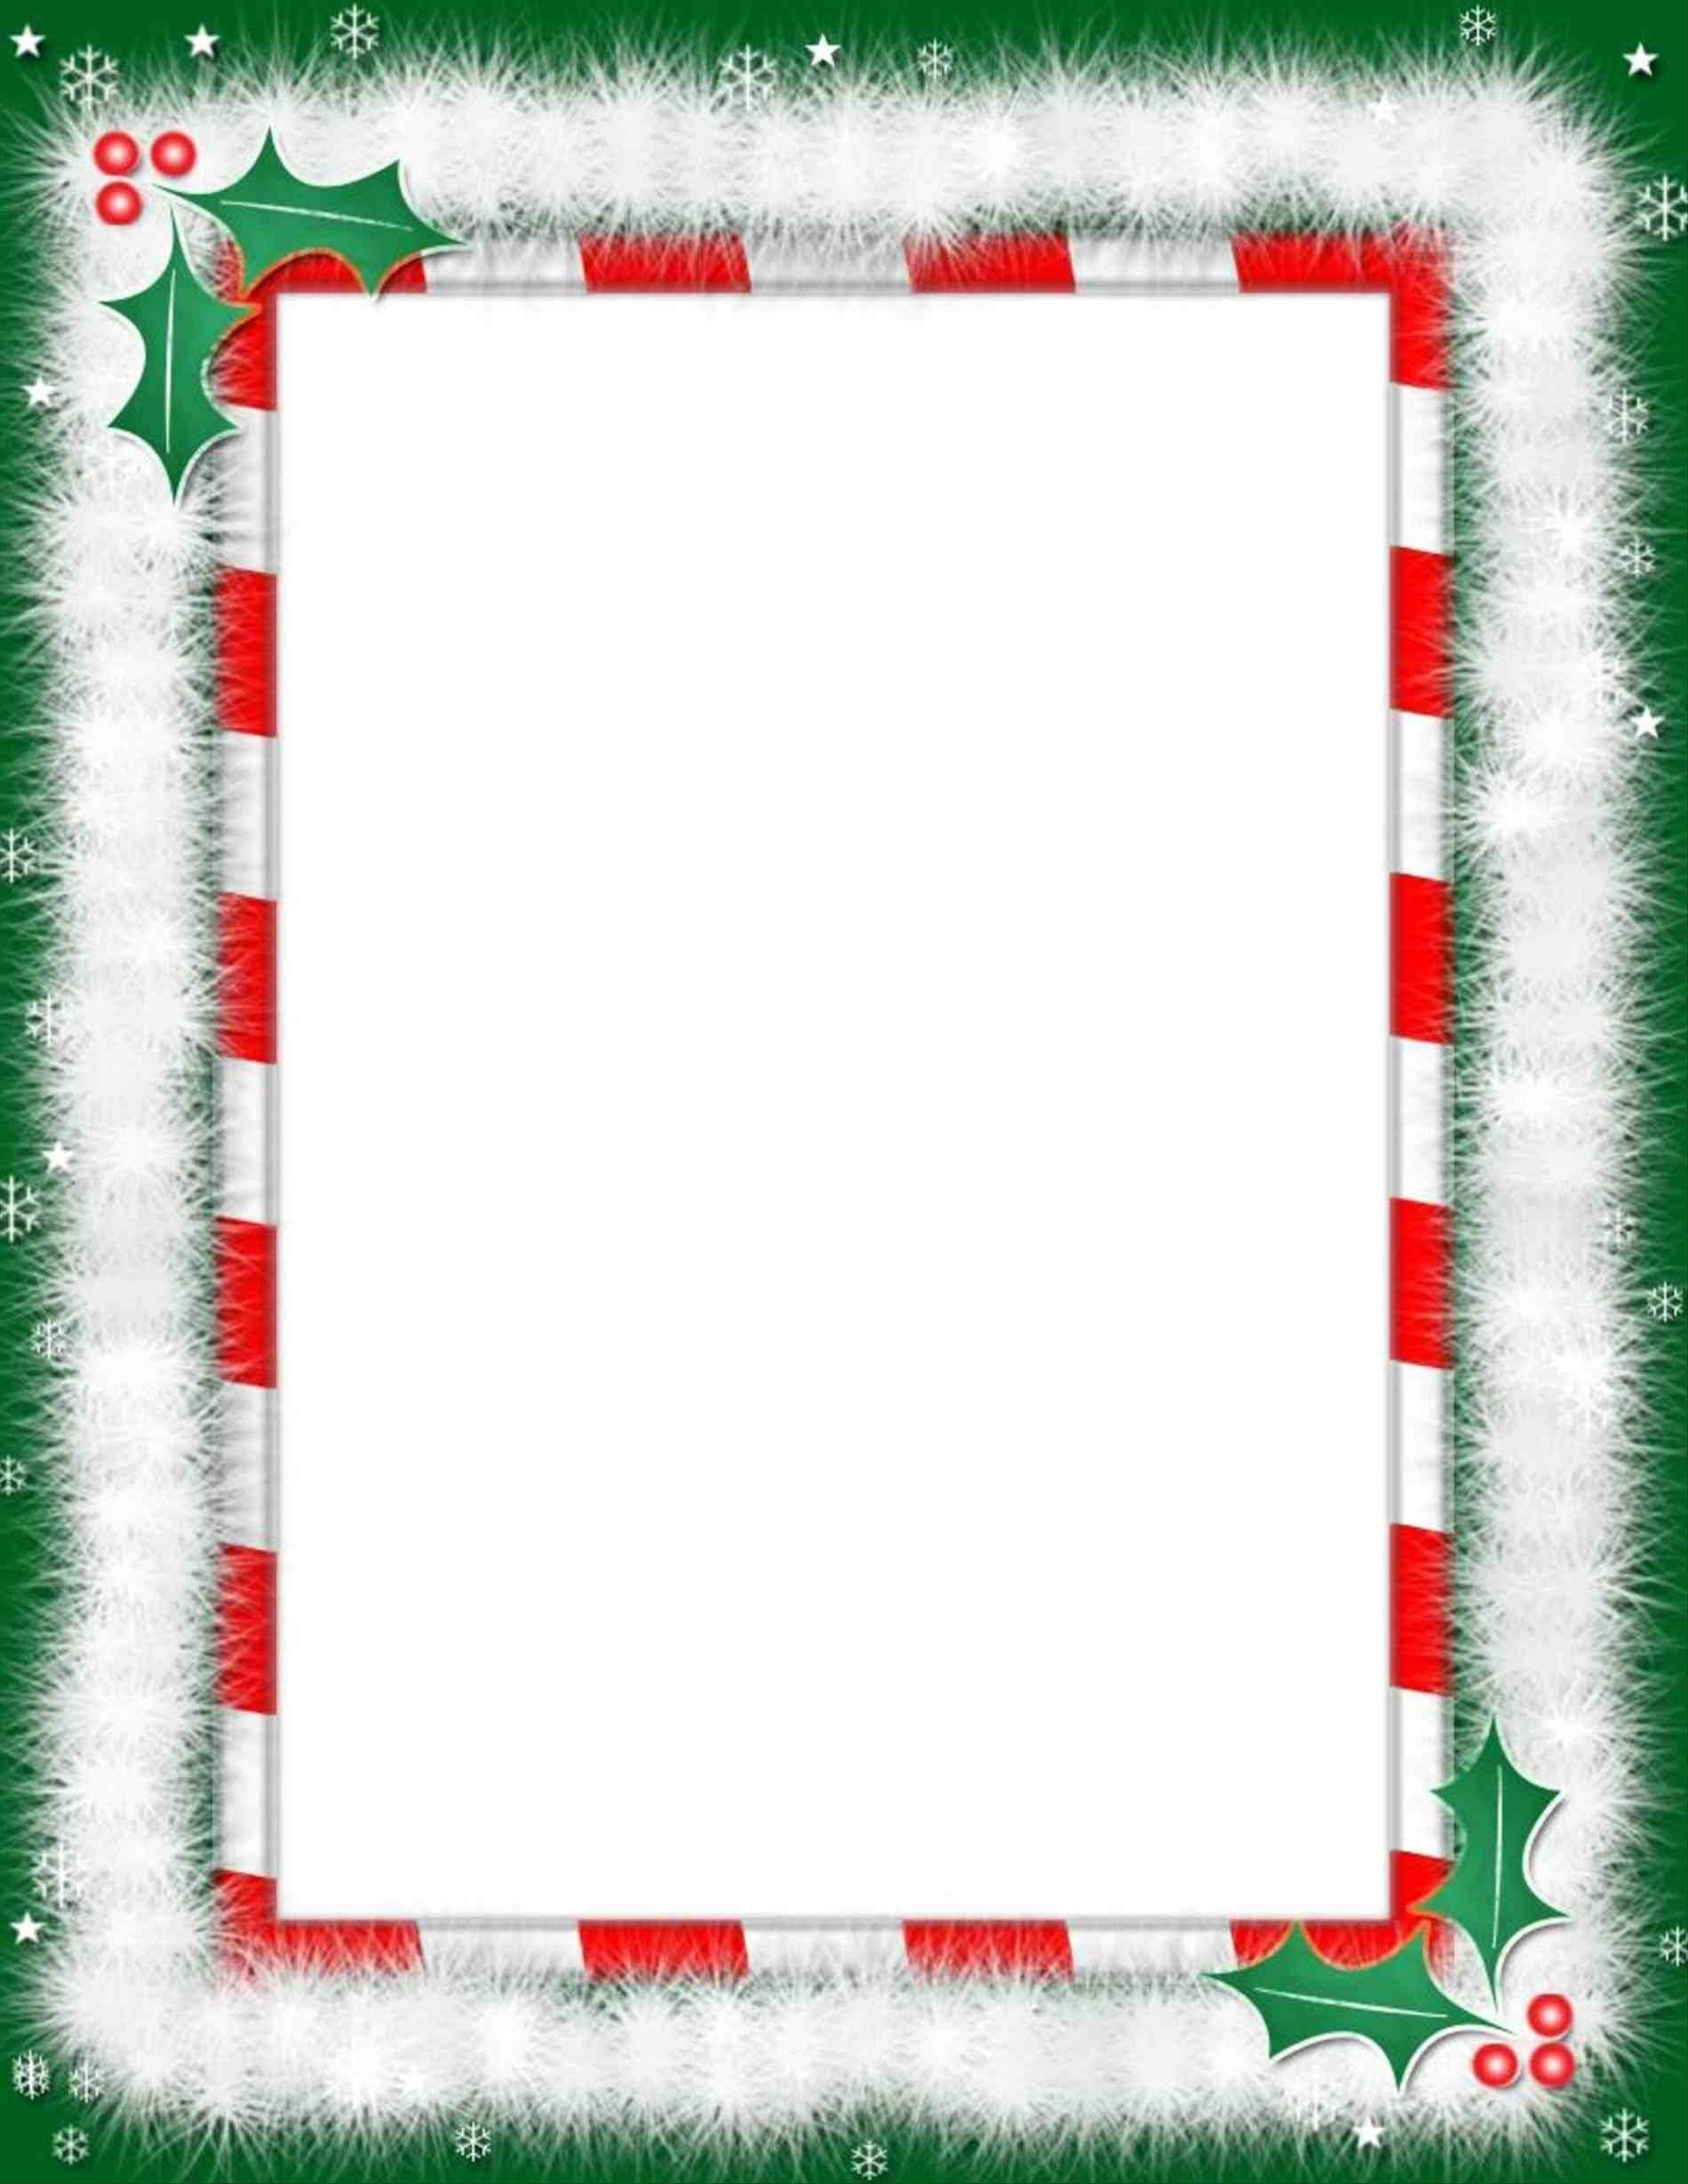 Christmas Page Border Landscape | Baby Its Christmas!!! | Free - Free Printable Page Borders Christmas